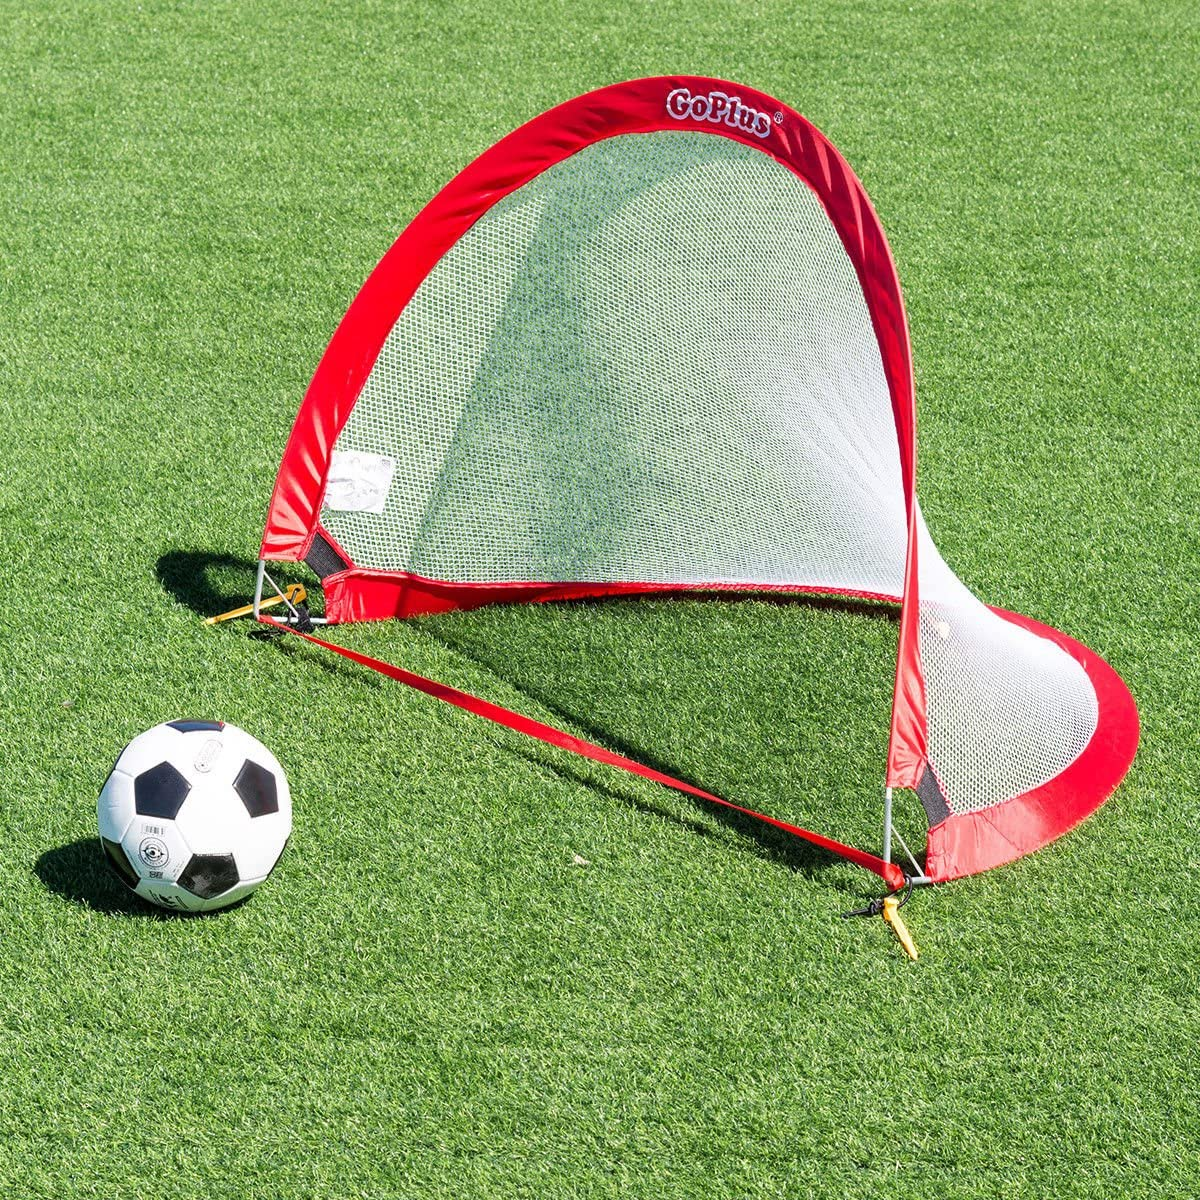 Collapsible Soccer Pop Up Goal Set of 2 Football Nets Portable Travel Bag 4ft